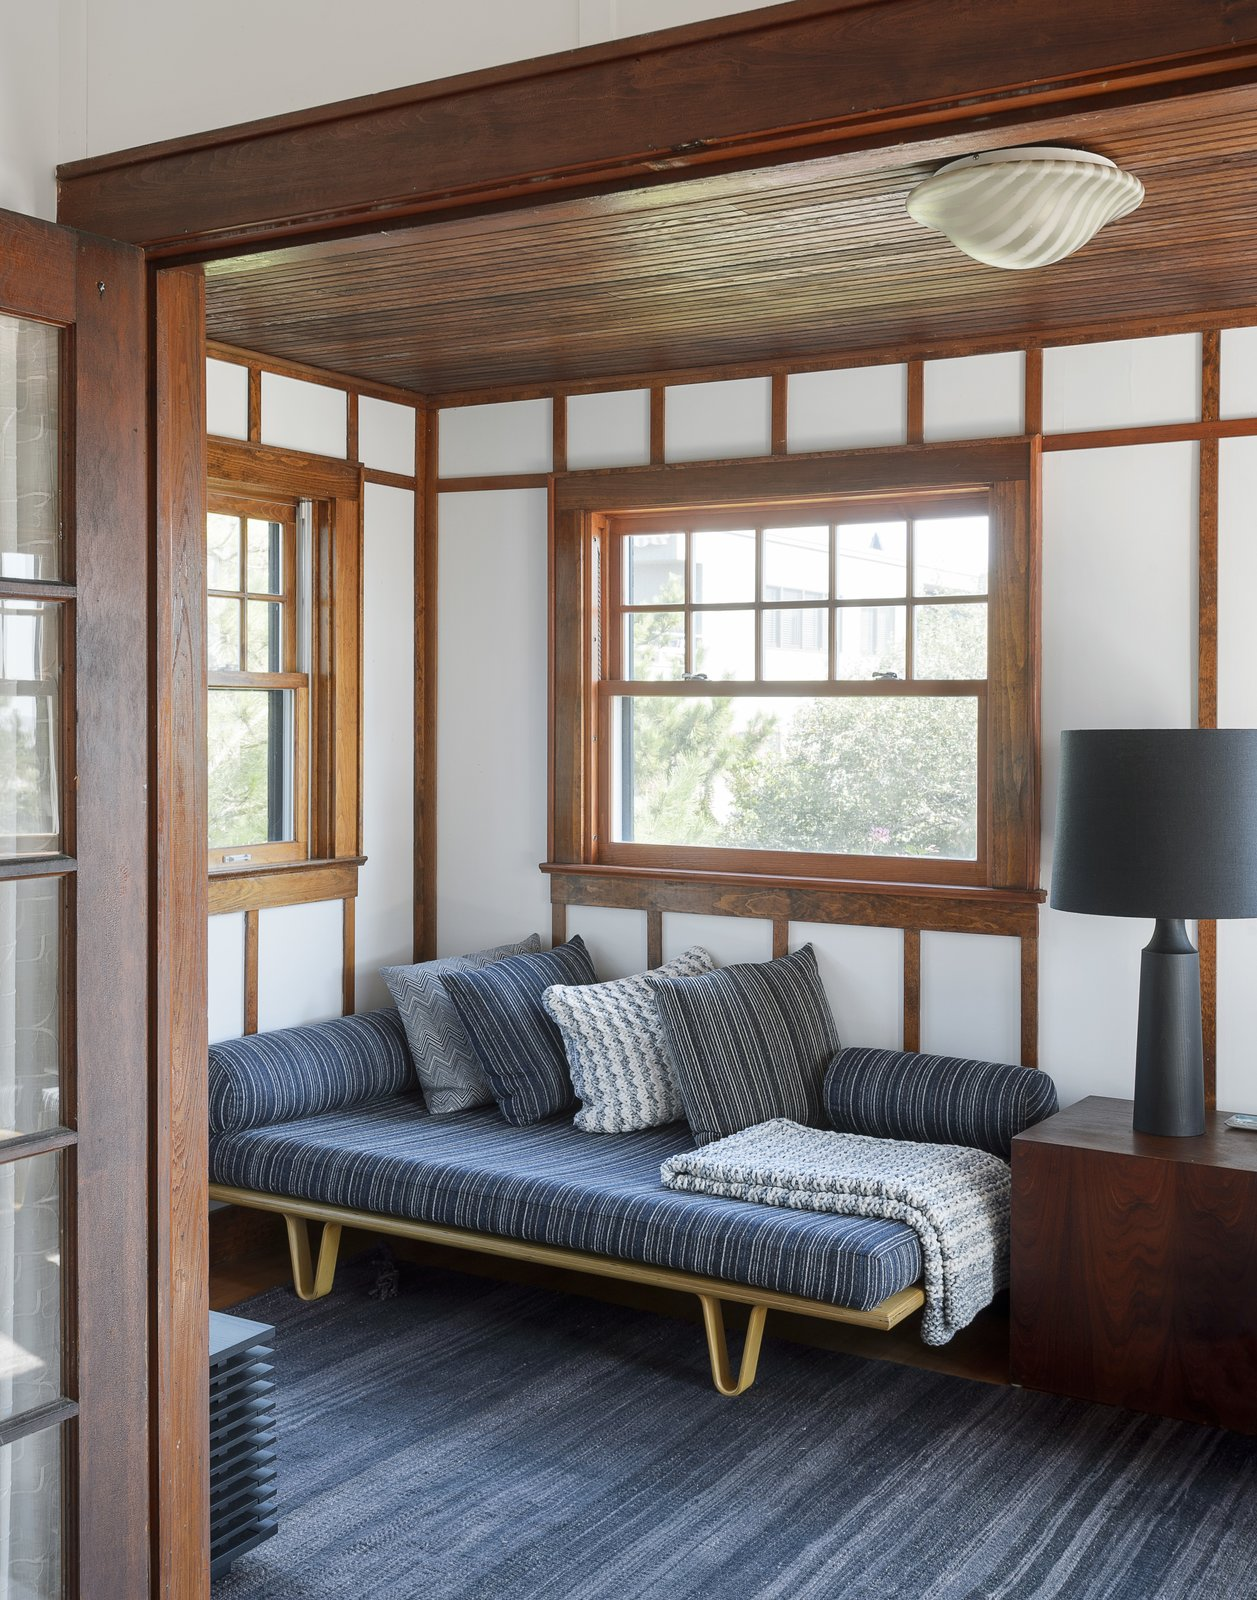 Living Room, Ceiling Lighting, Sofa, Table Lighting, Rug Floor, End Tables, and Dark Hardwood Floor  Best Photos from This Eclectic Beach Bungalow on Fire Island Was Saved After Sandy